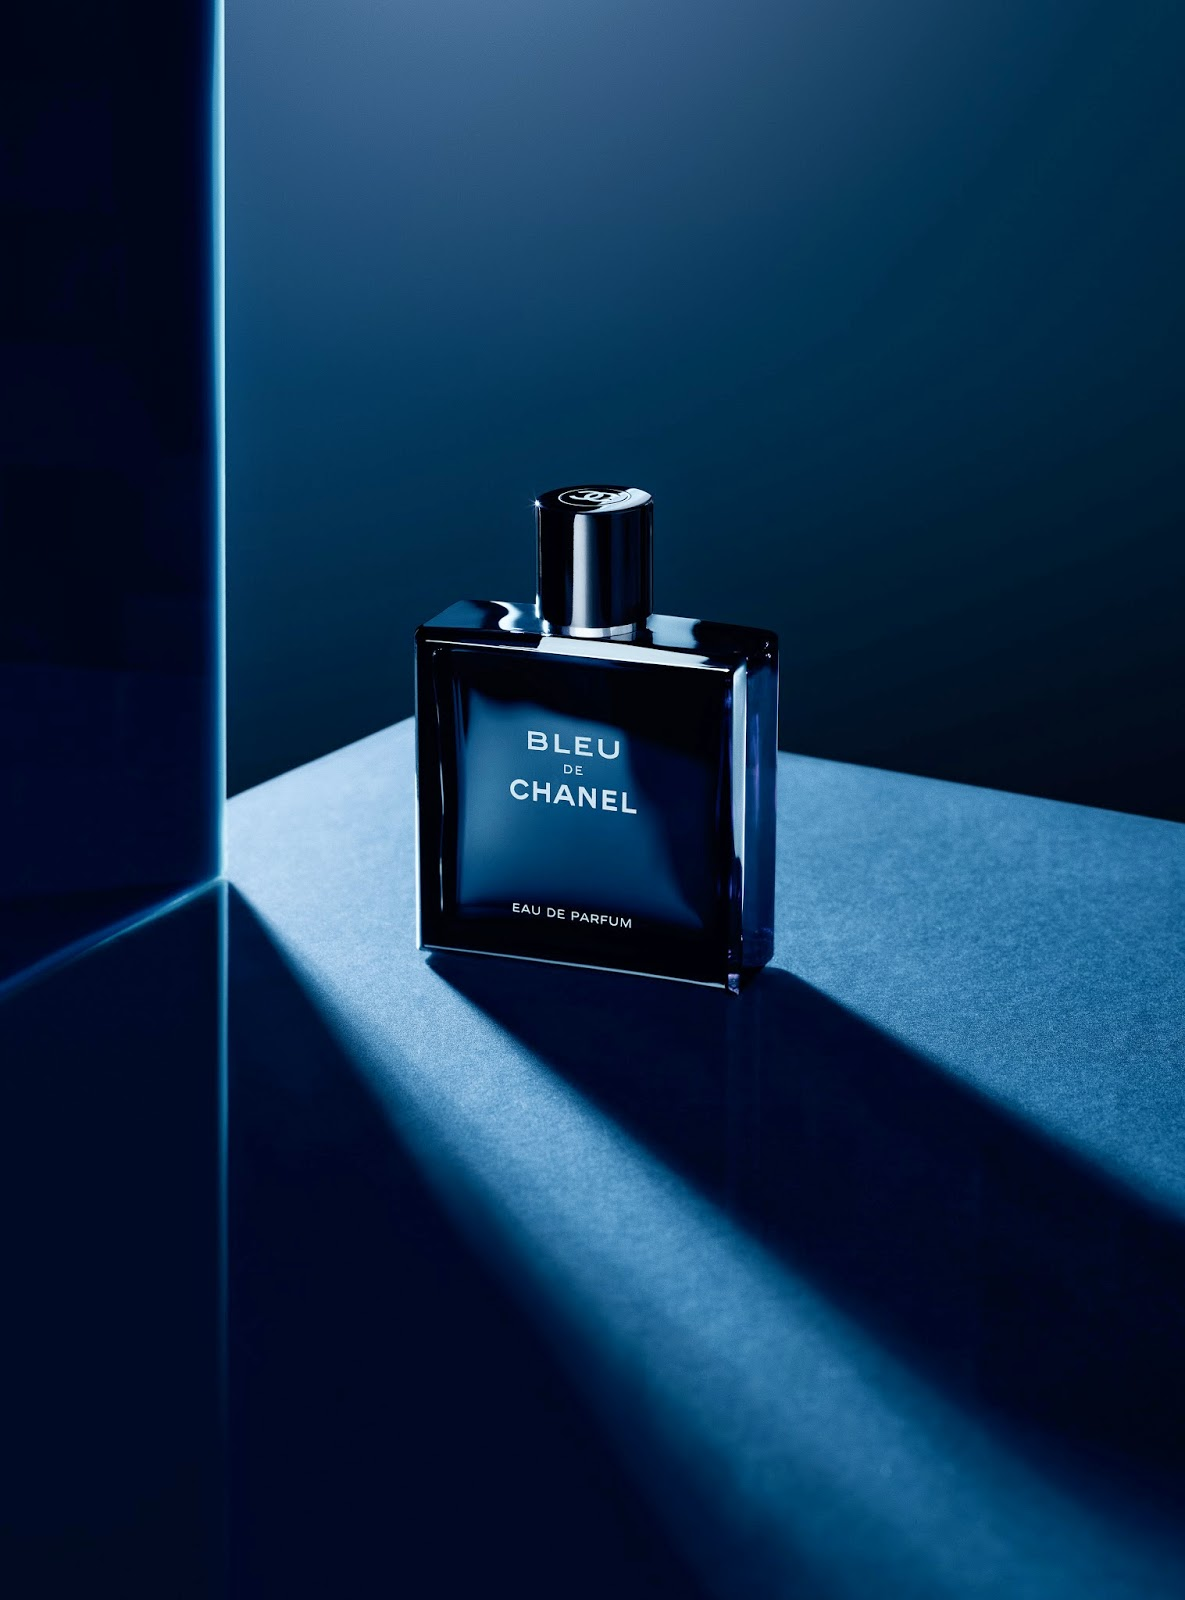 bleu de chanel lance sa version eau de parfum. Black Bedroom Furniture Sets. Home Design Ideas